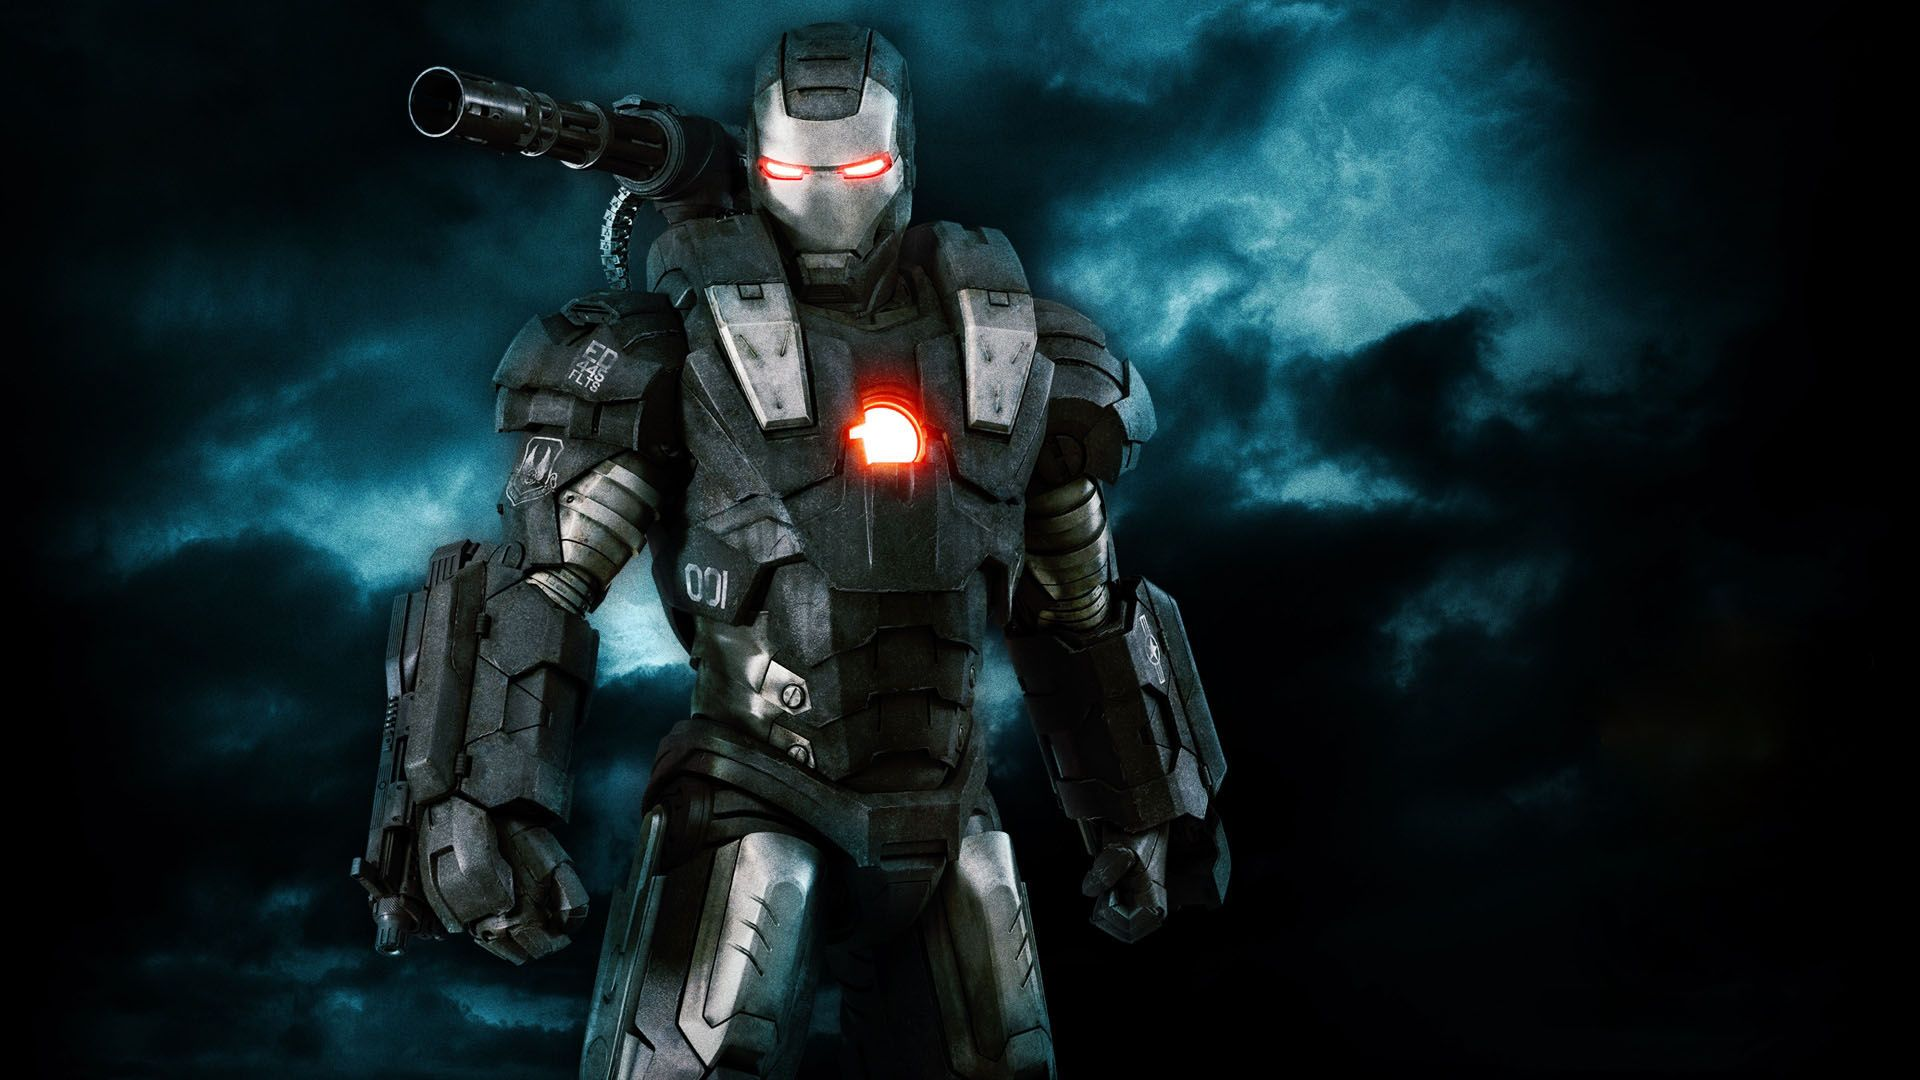 cool pictures iron man 3 | yjgfujg | pinterest | wallpaper